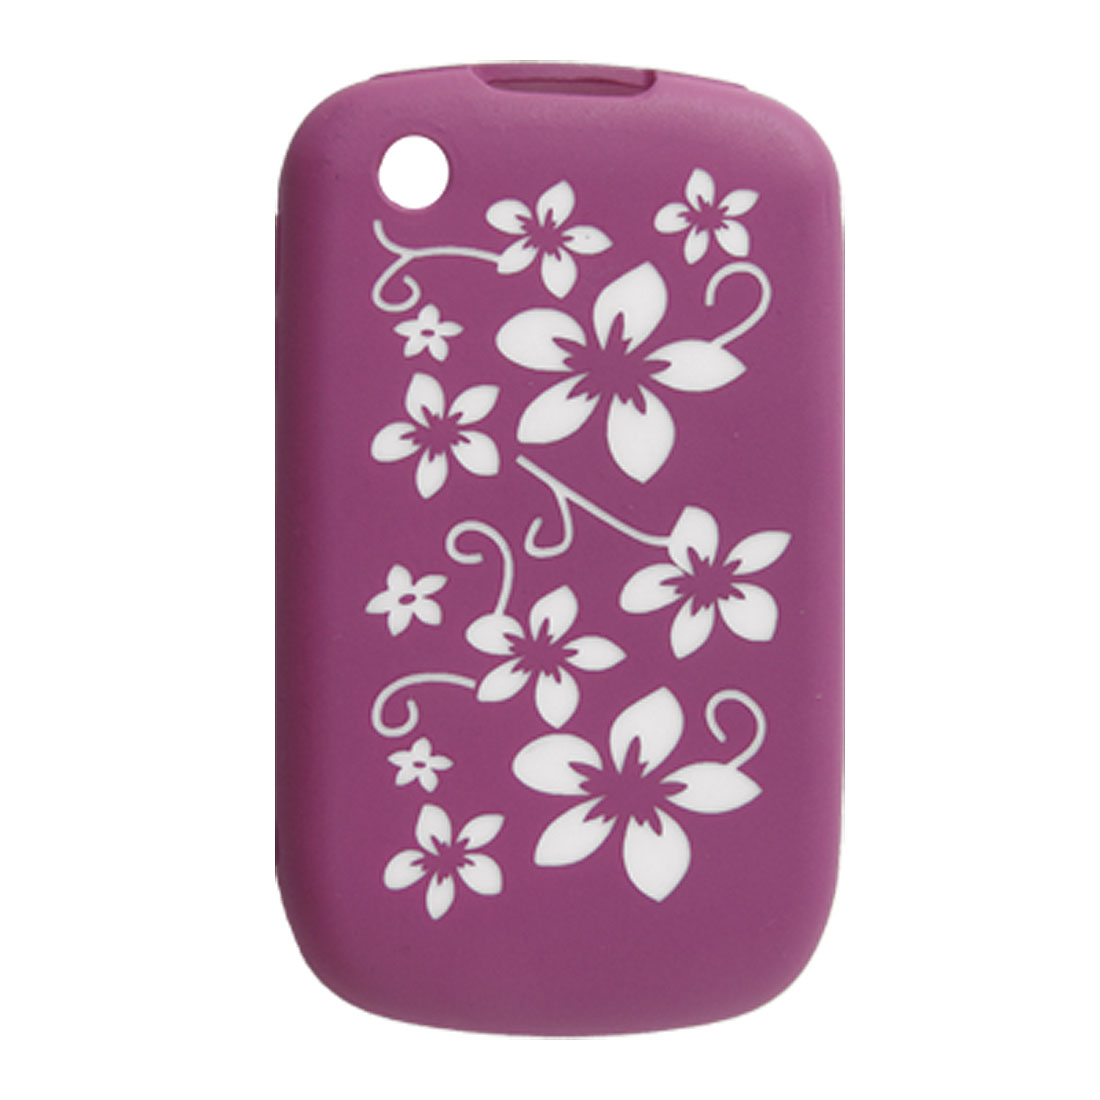 Amaranth White Floral Silicone Skin Cover for Blackberry 8520 8530